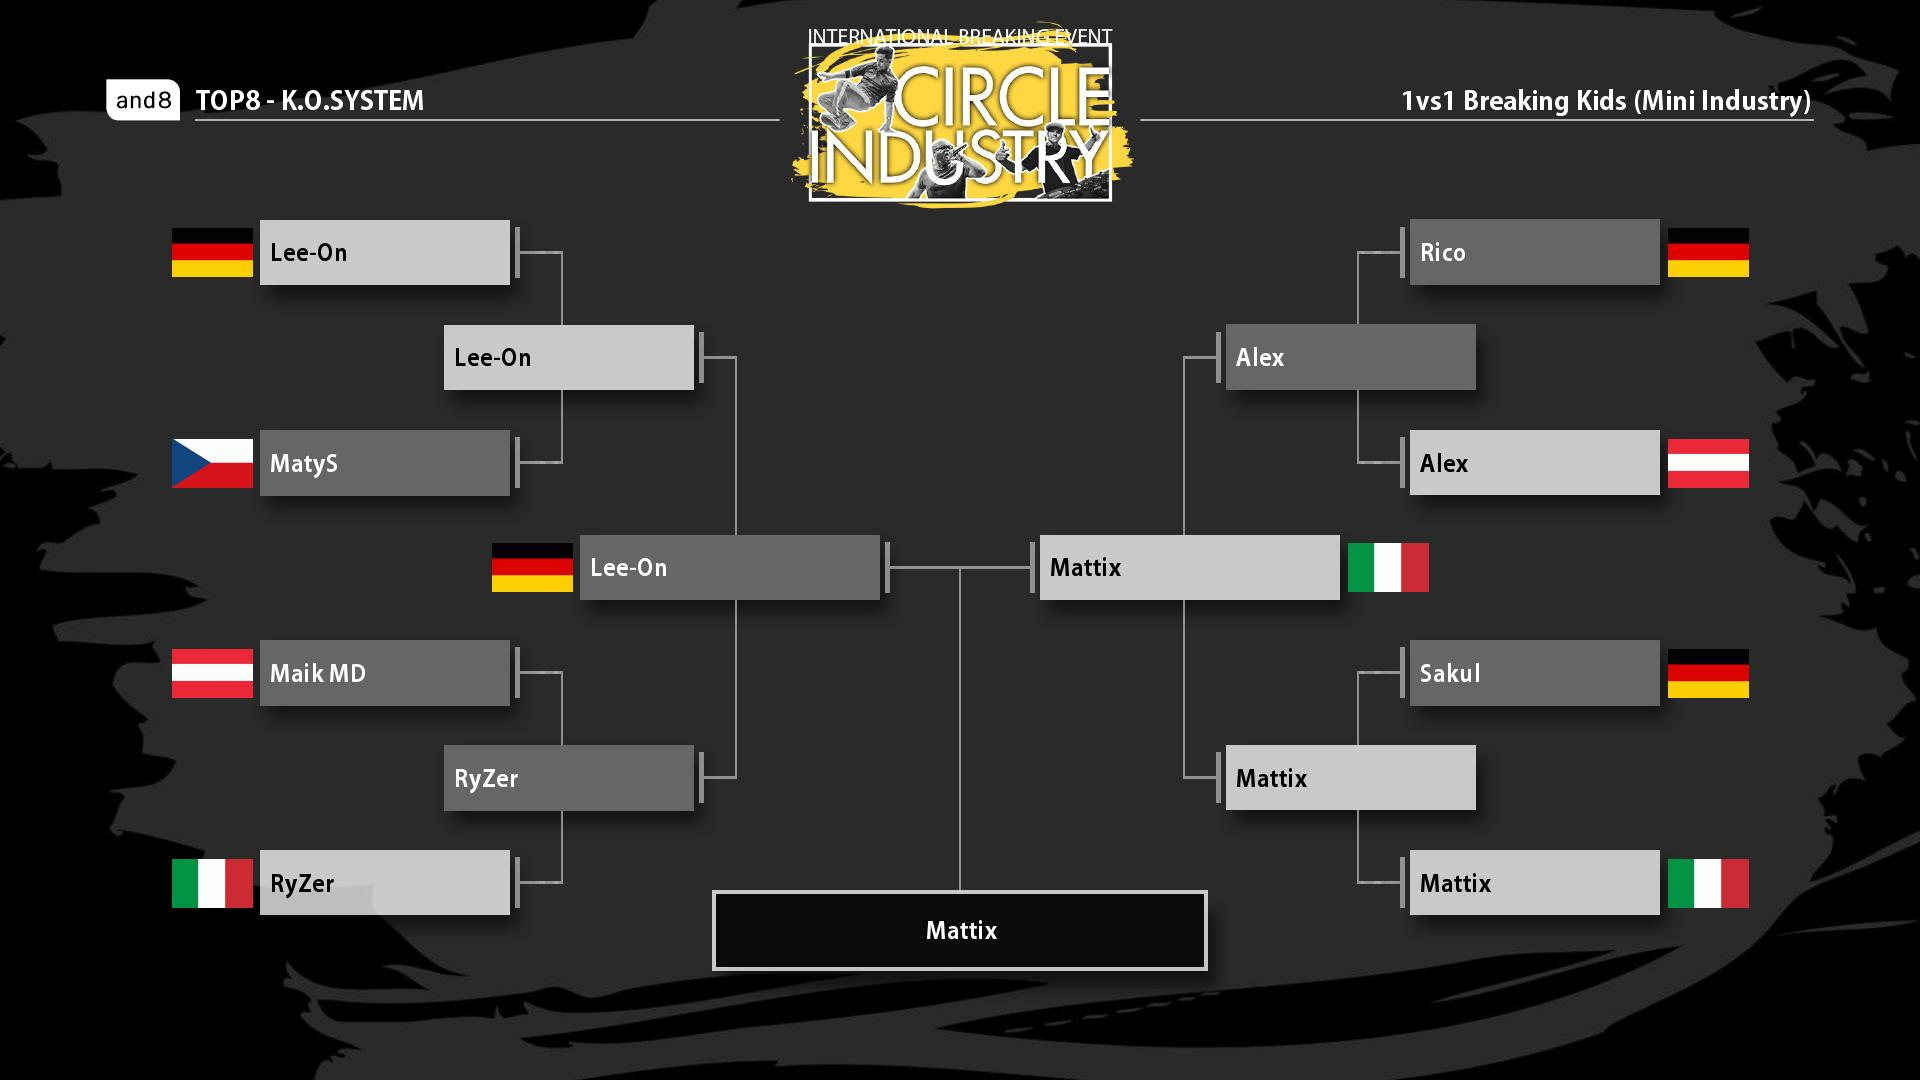 The Battle Bracket of Mini Industry 2019